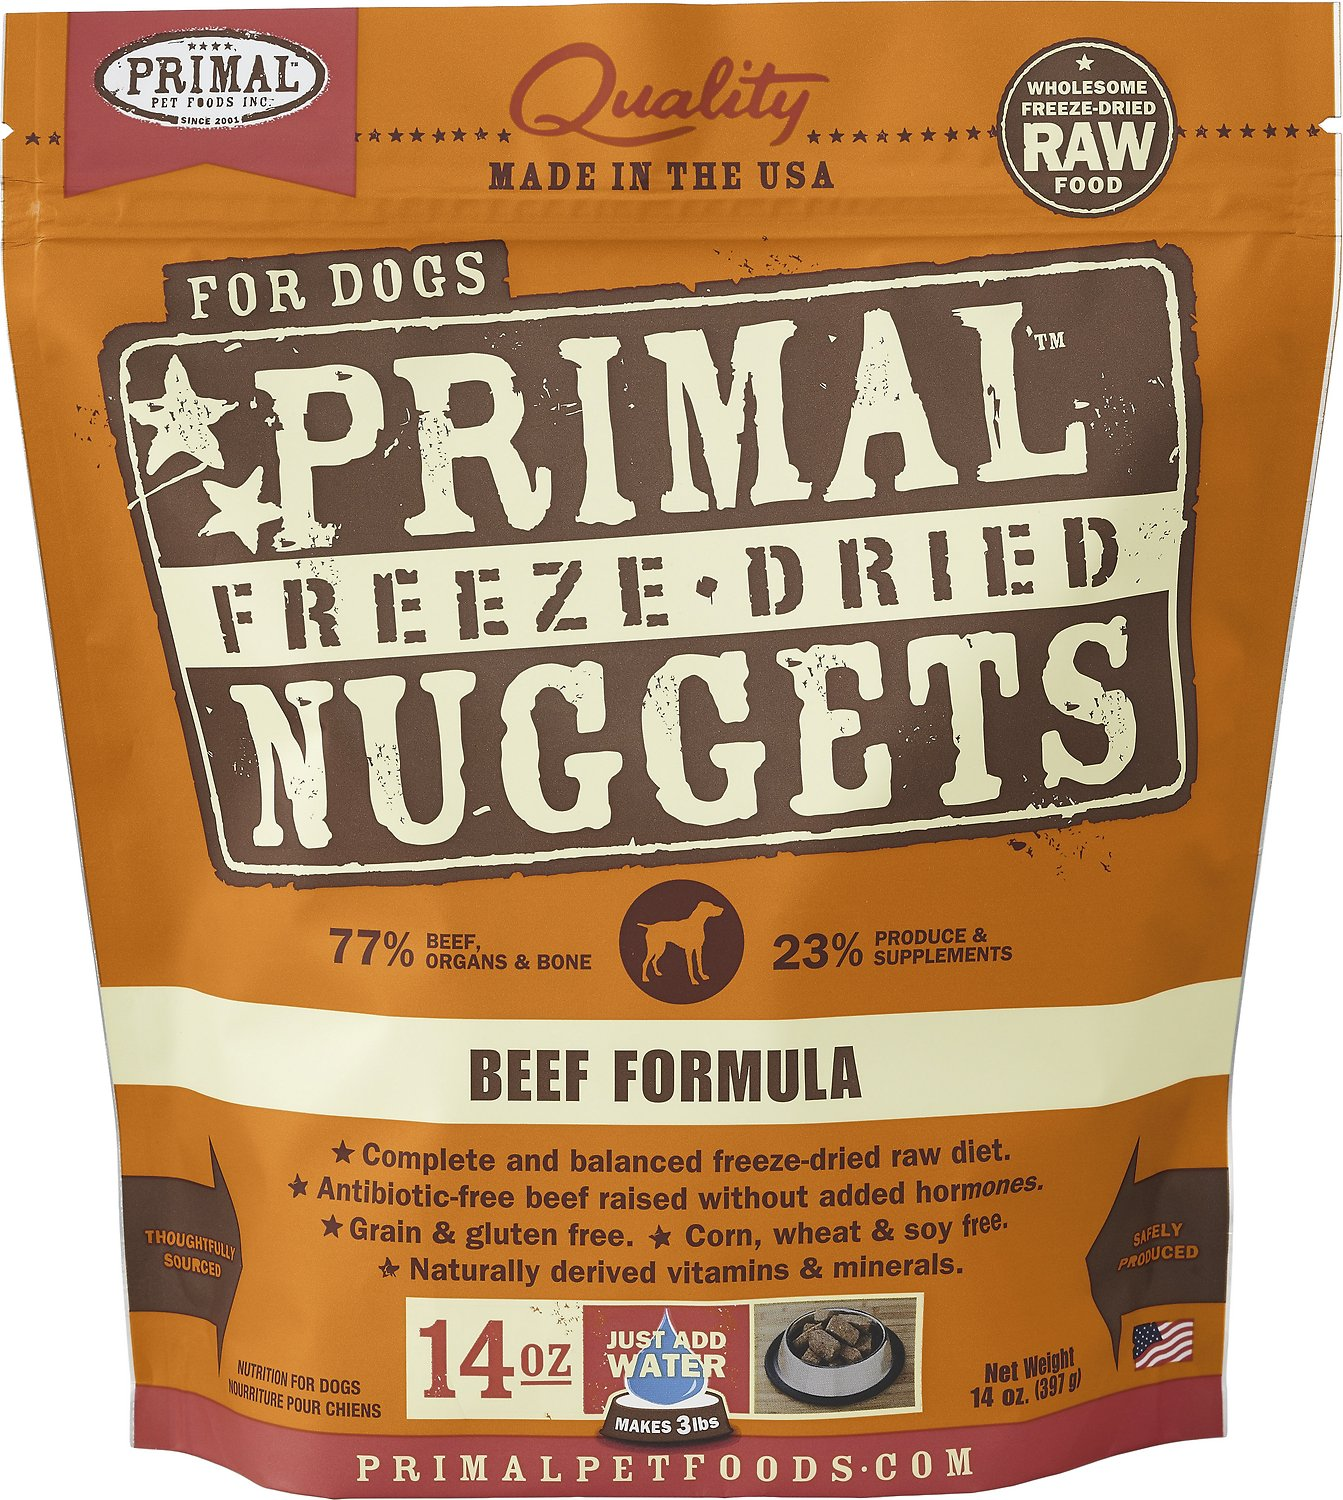 Primal Beef Formula Nuggets Grain-Free Raw Freeze-Dried Dog Food Image